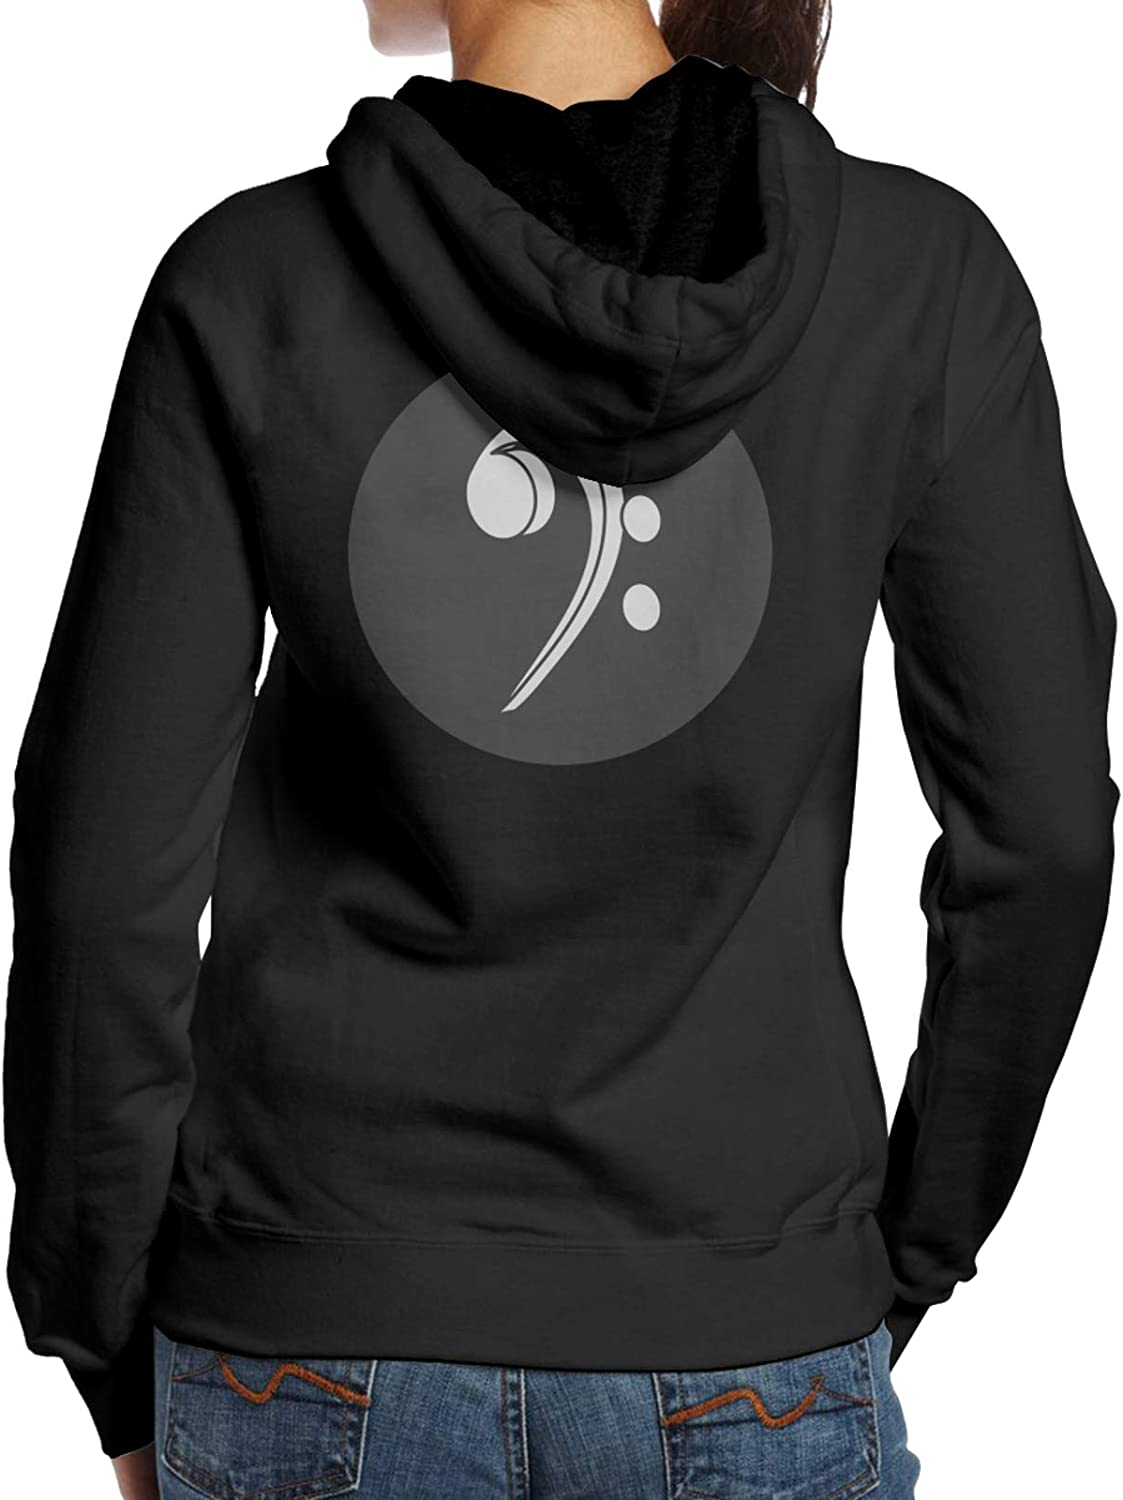 Bass Clef Music Logo Woman'S Large-scale sale Hoodie Fashion Sleeve Long S San Francisco Mall Casual